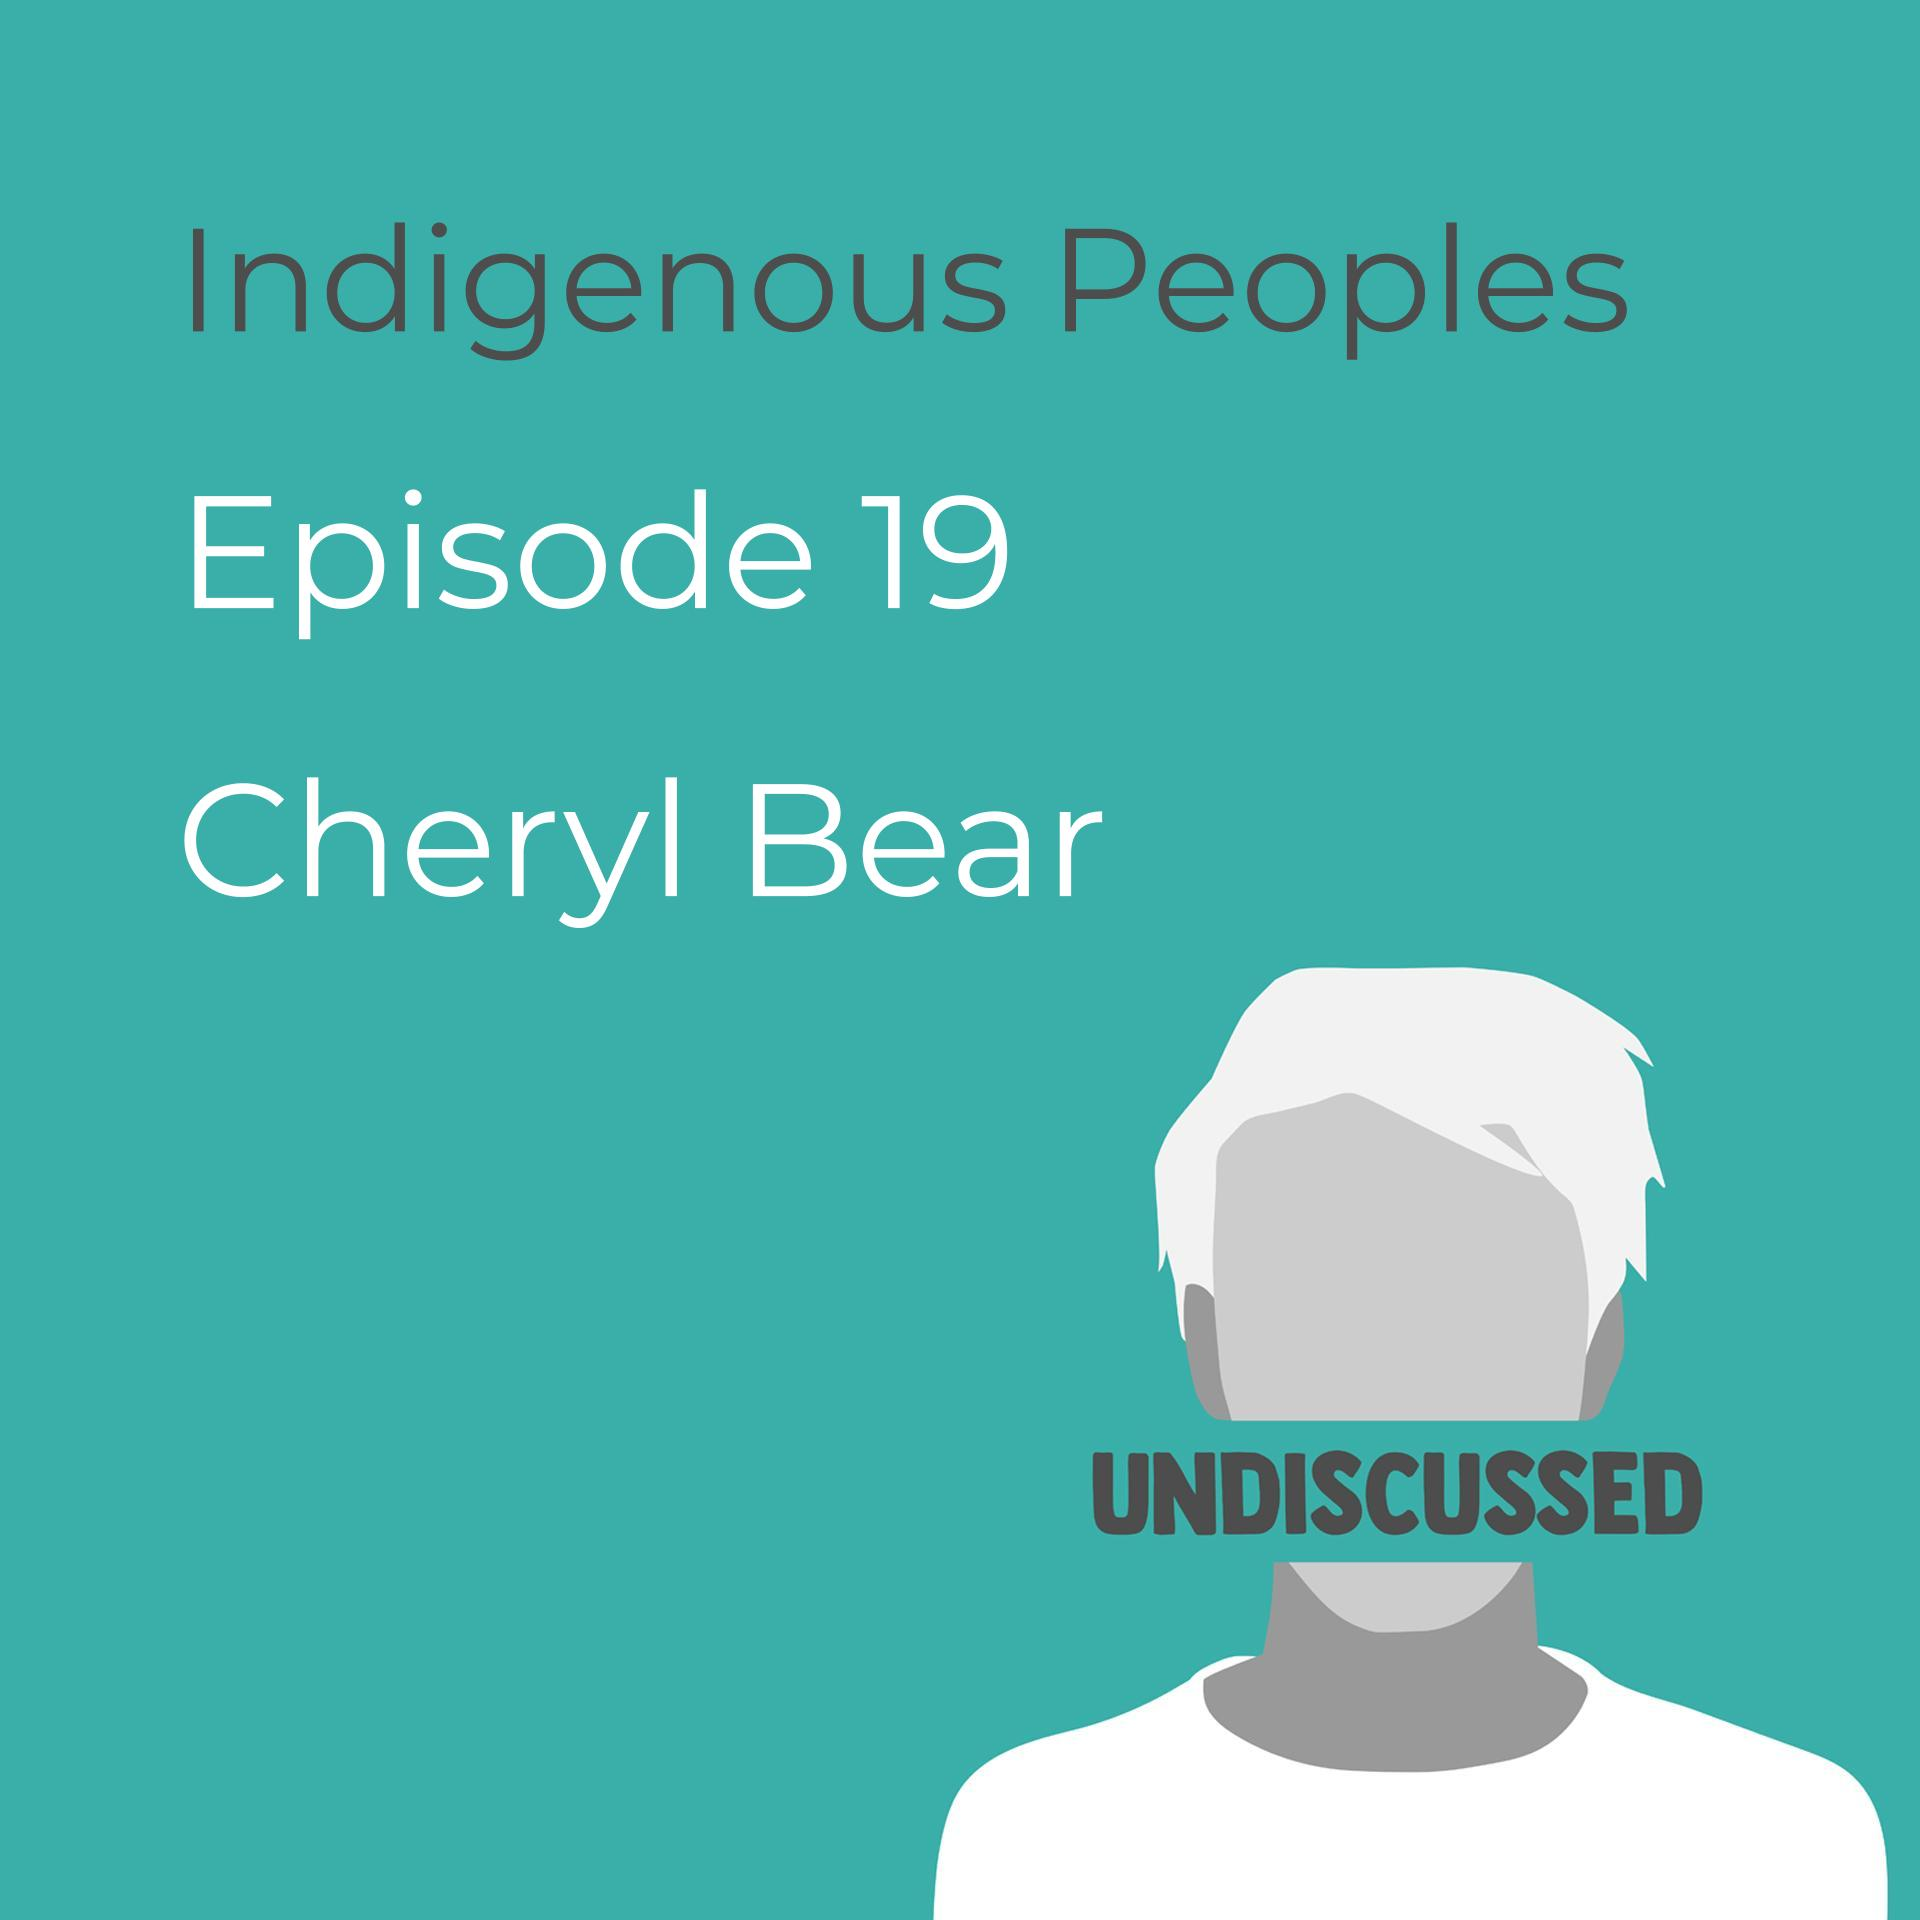 Episode 19 - Indigenous Peoples with Cheryl Bear